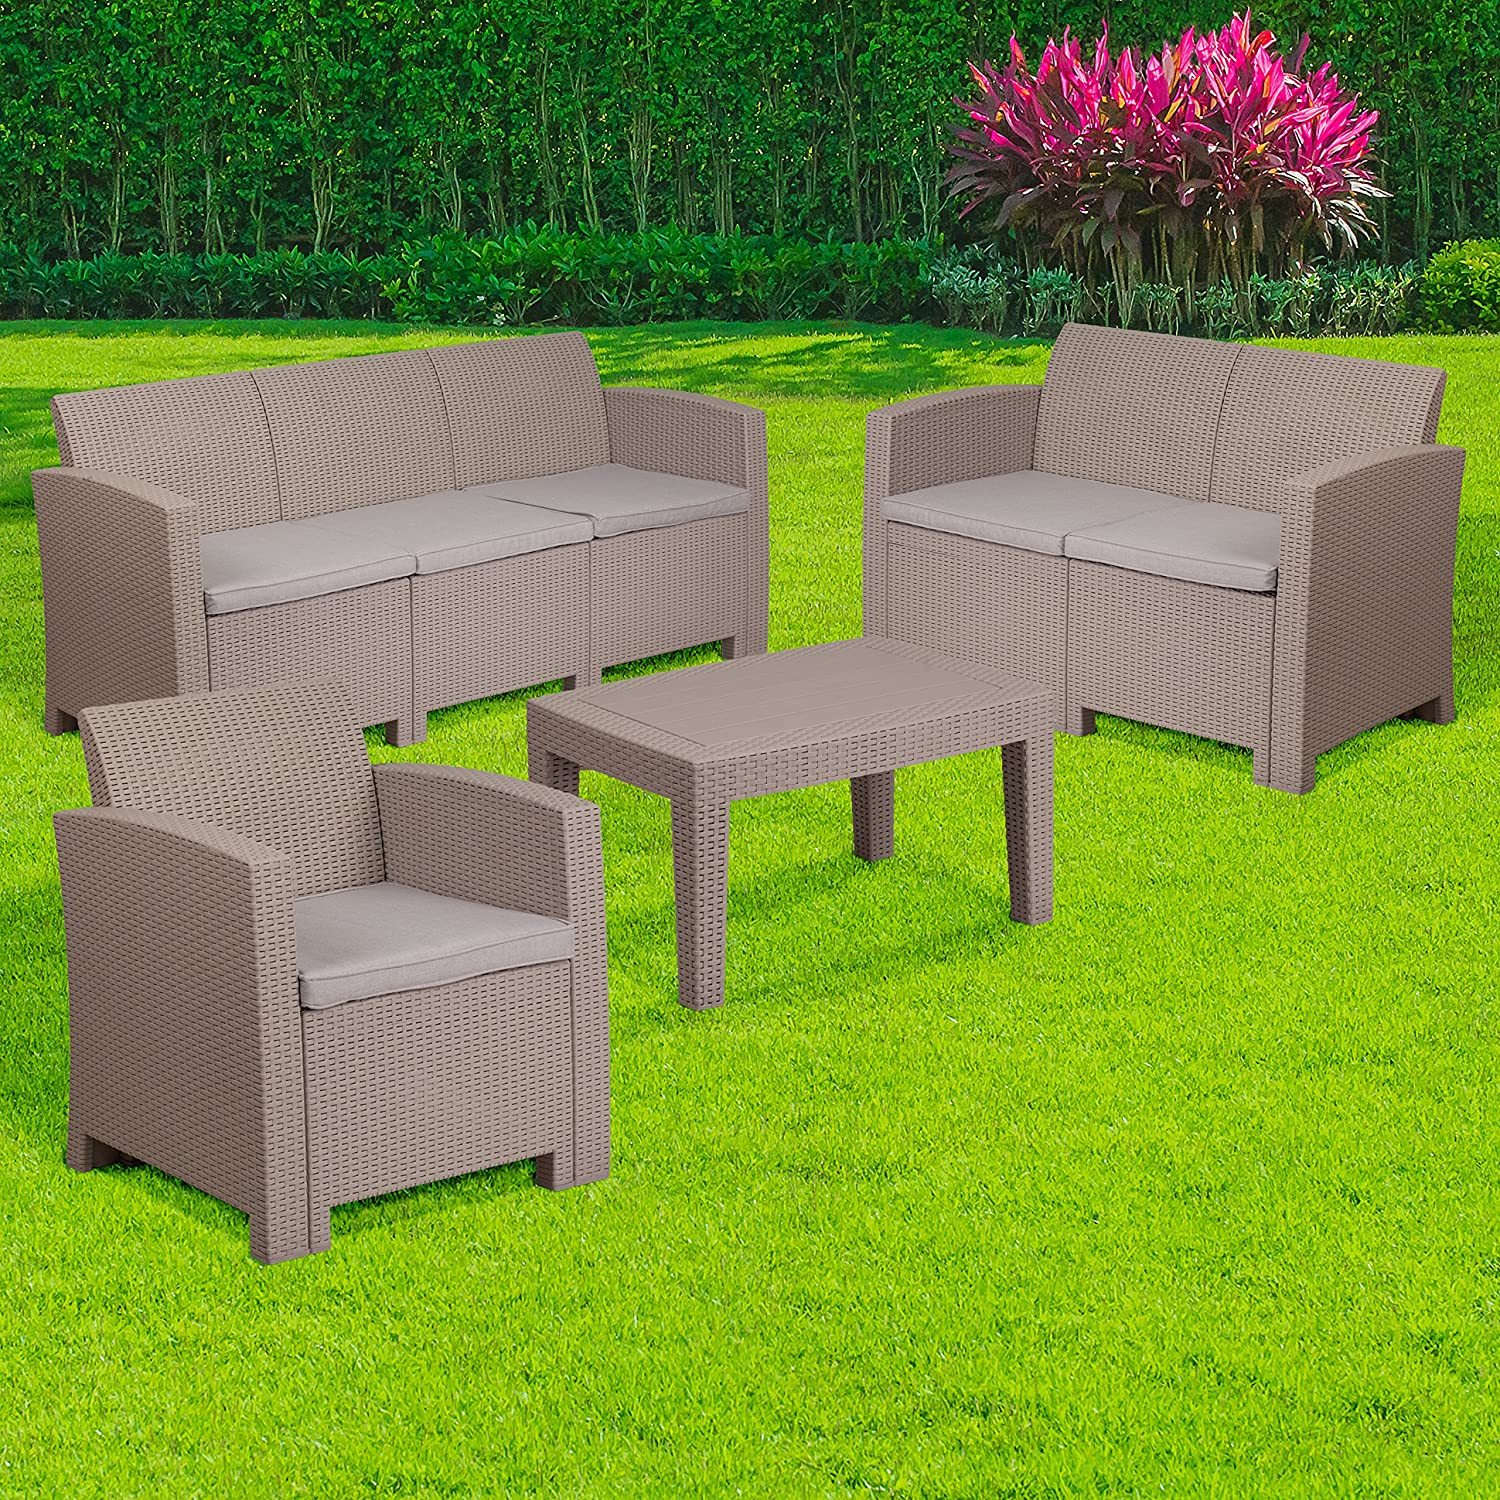 Flash Furniture 4 Piece Outdoor Faux Rattan Chair, Loveseat, Sofa and Table Set in Charcoal